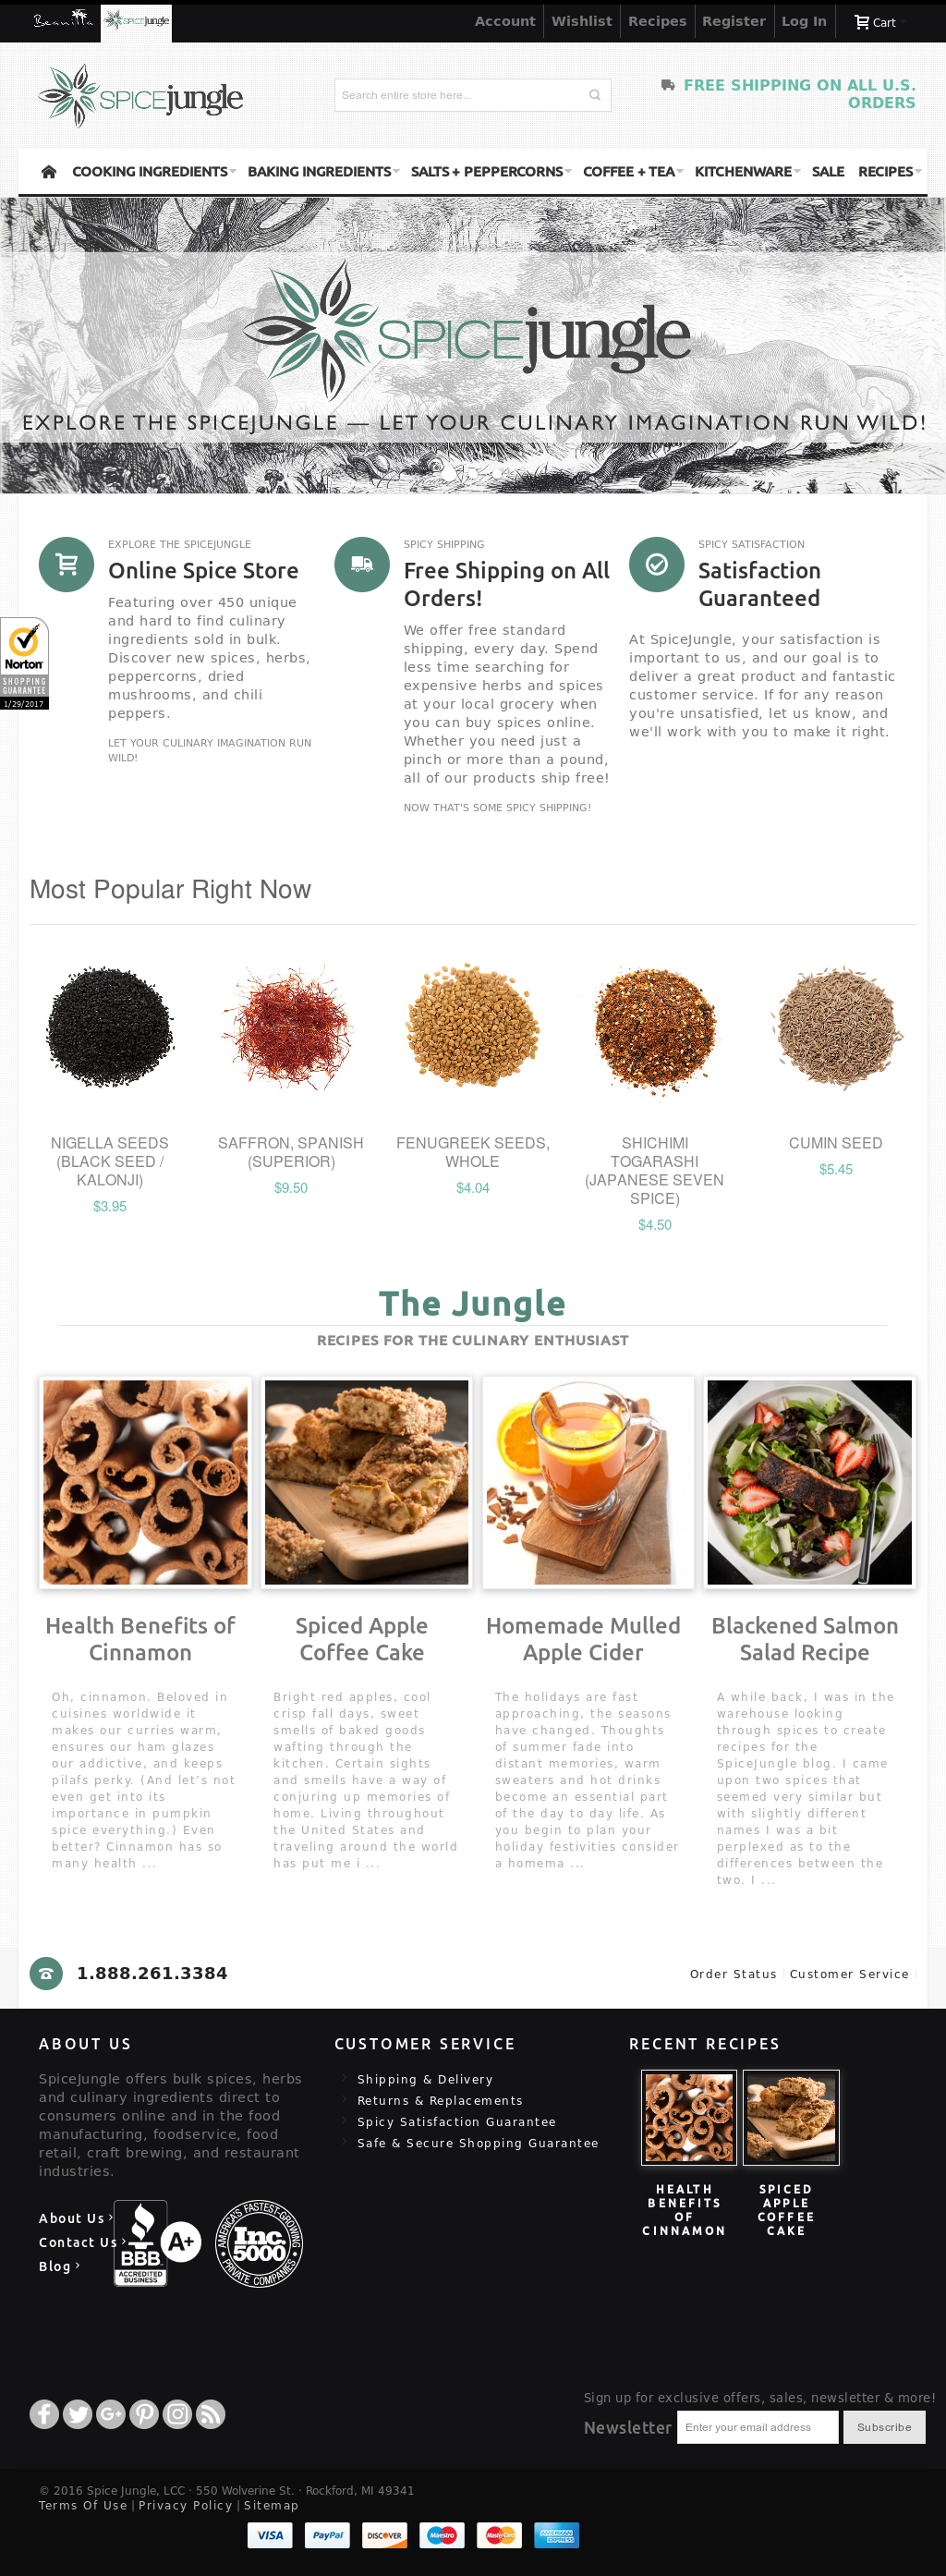 Spice Jungle Competitors, Revenue and Employees - Owler Company Profile